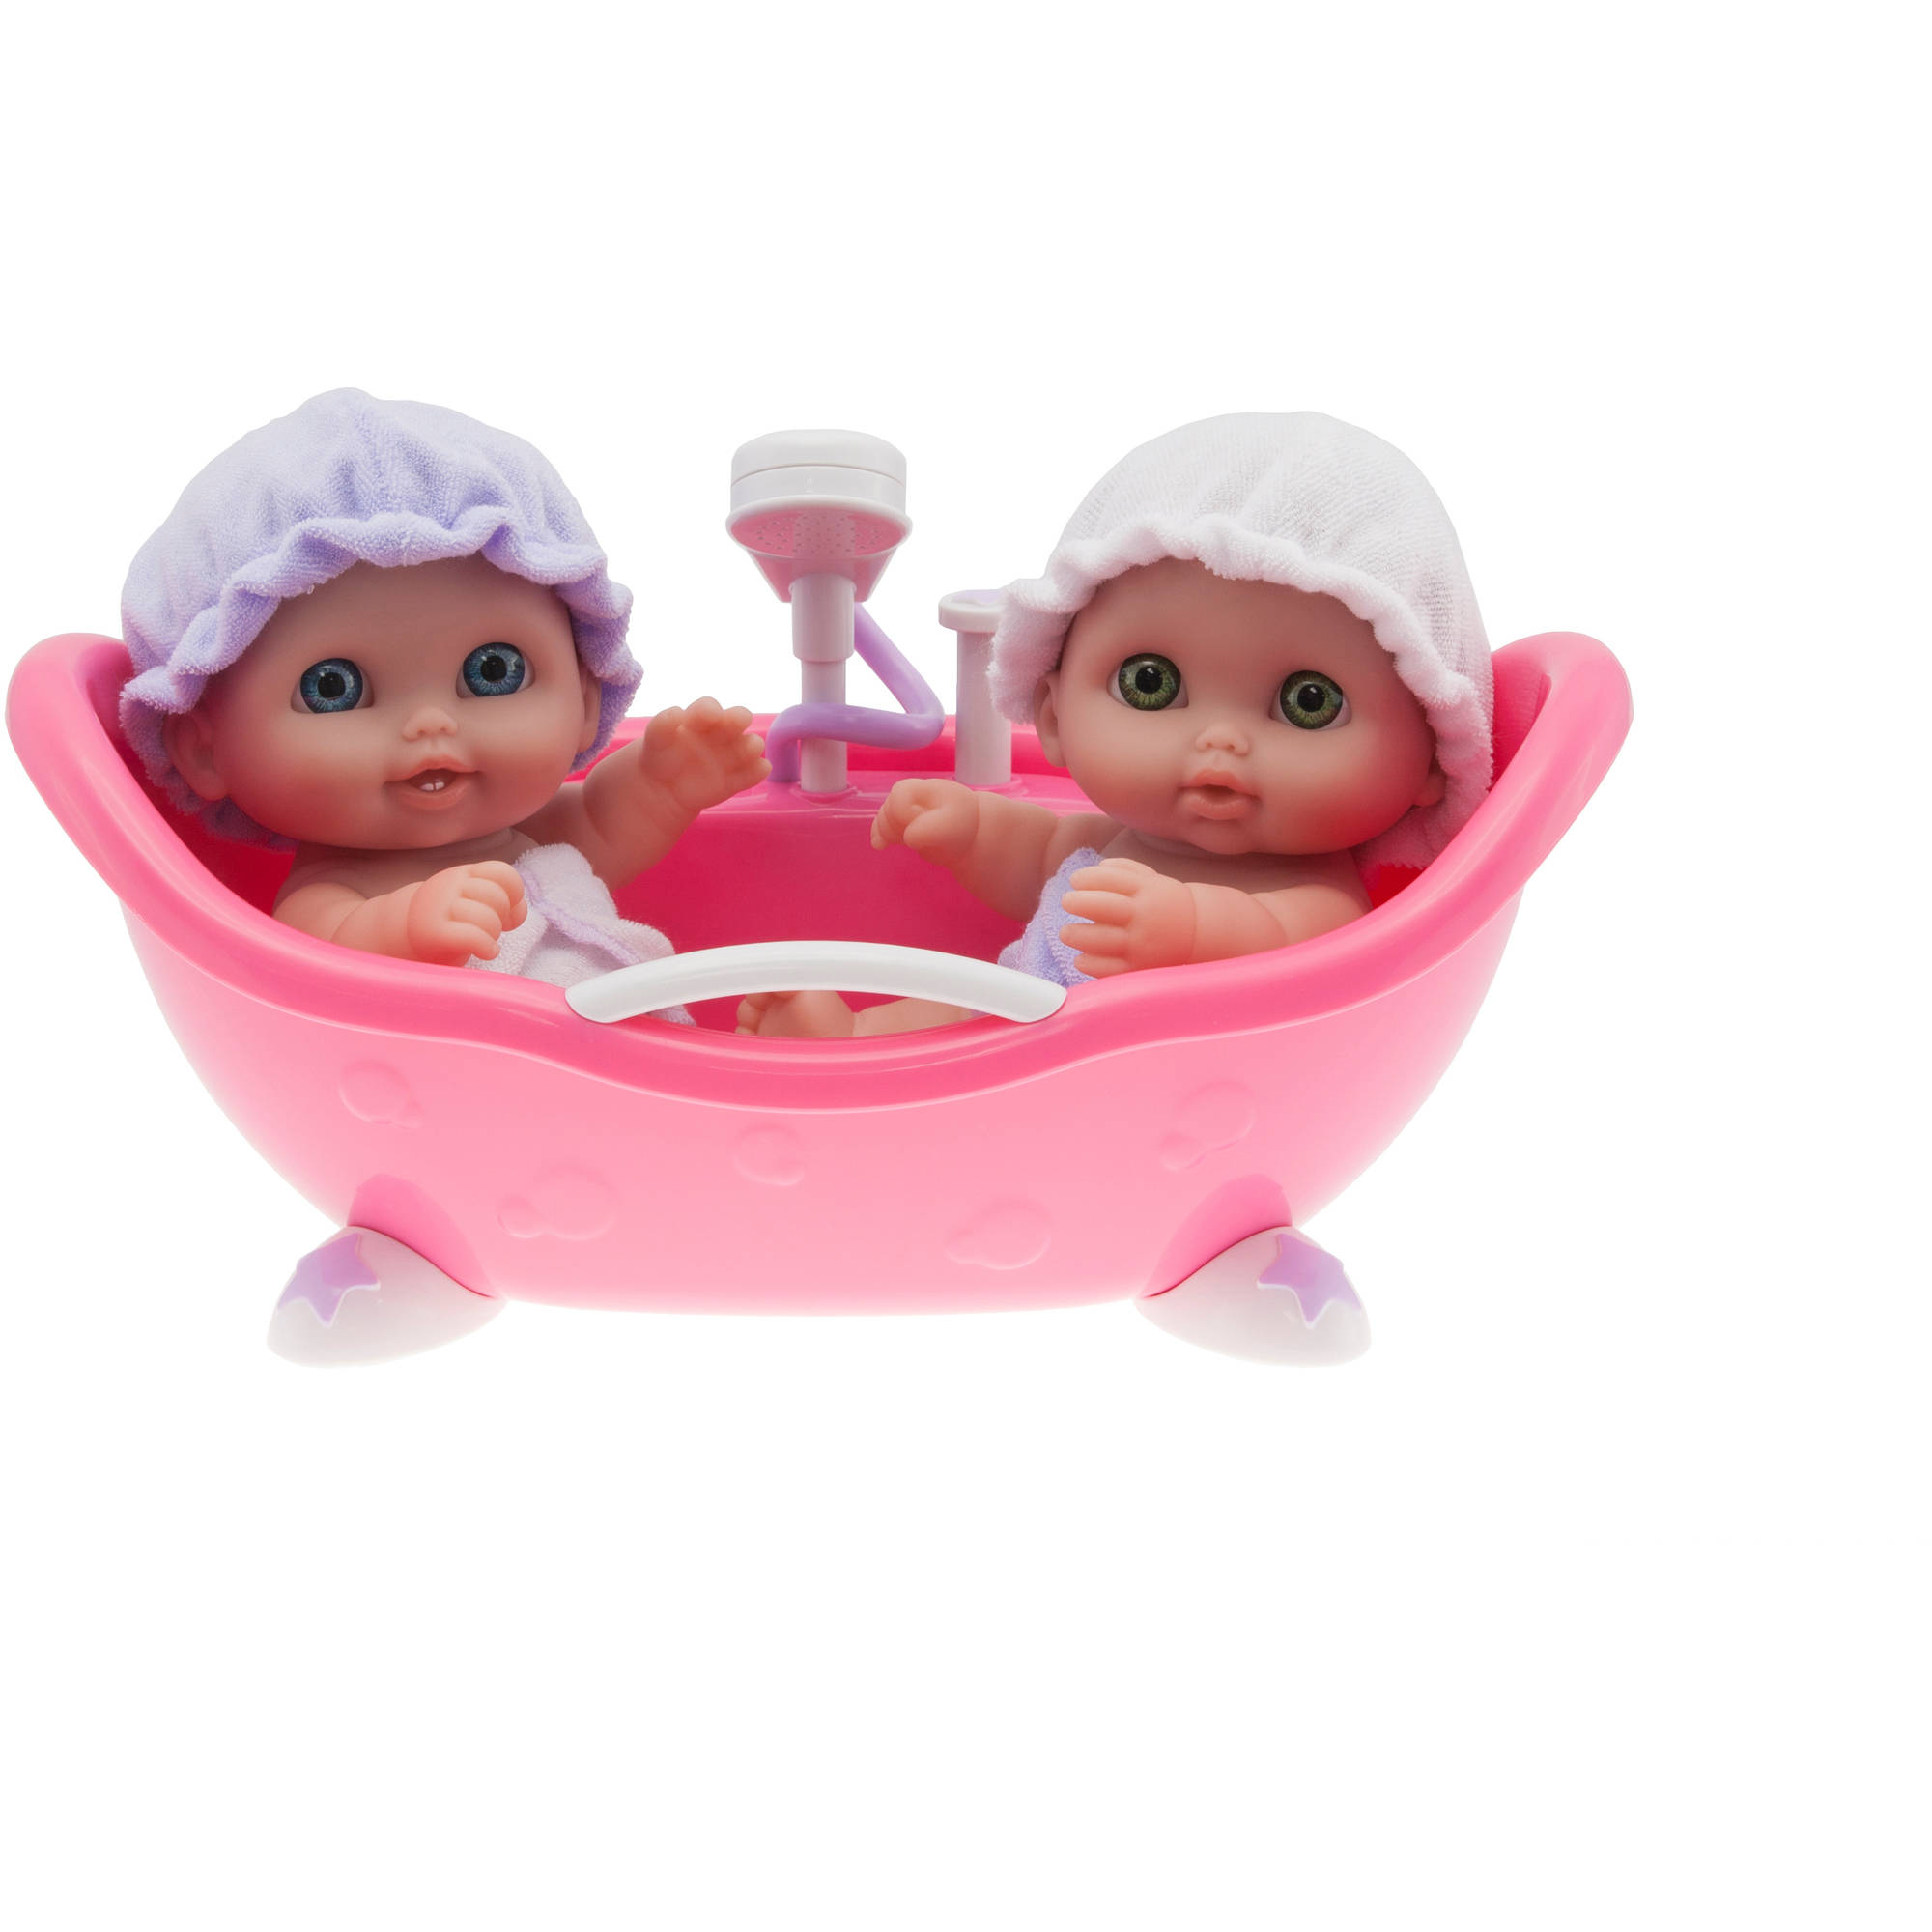 Lil\' Cutesies Twins with Bathtub - Walmart.com